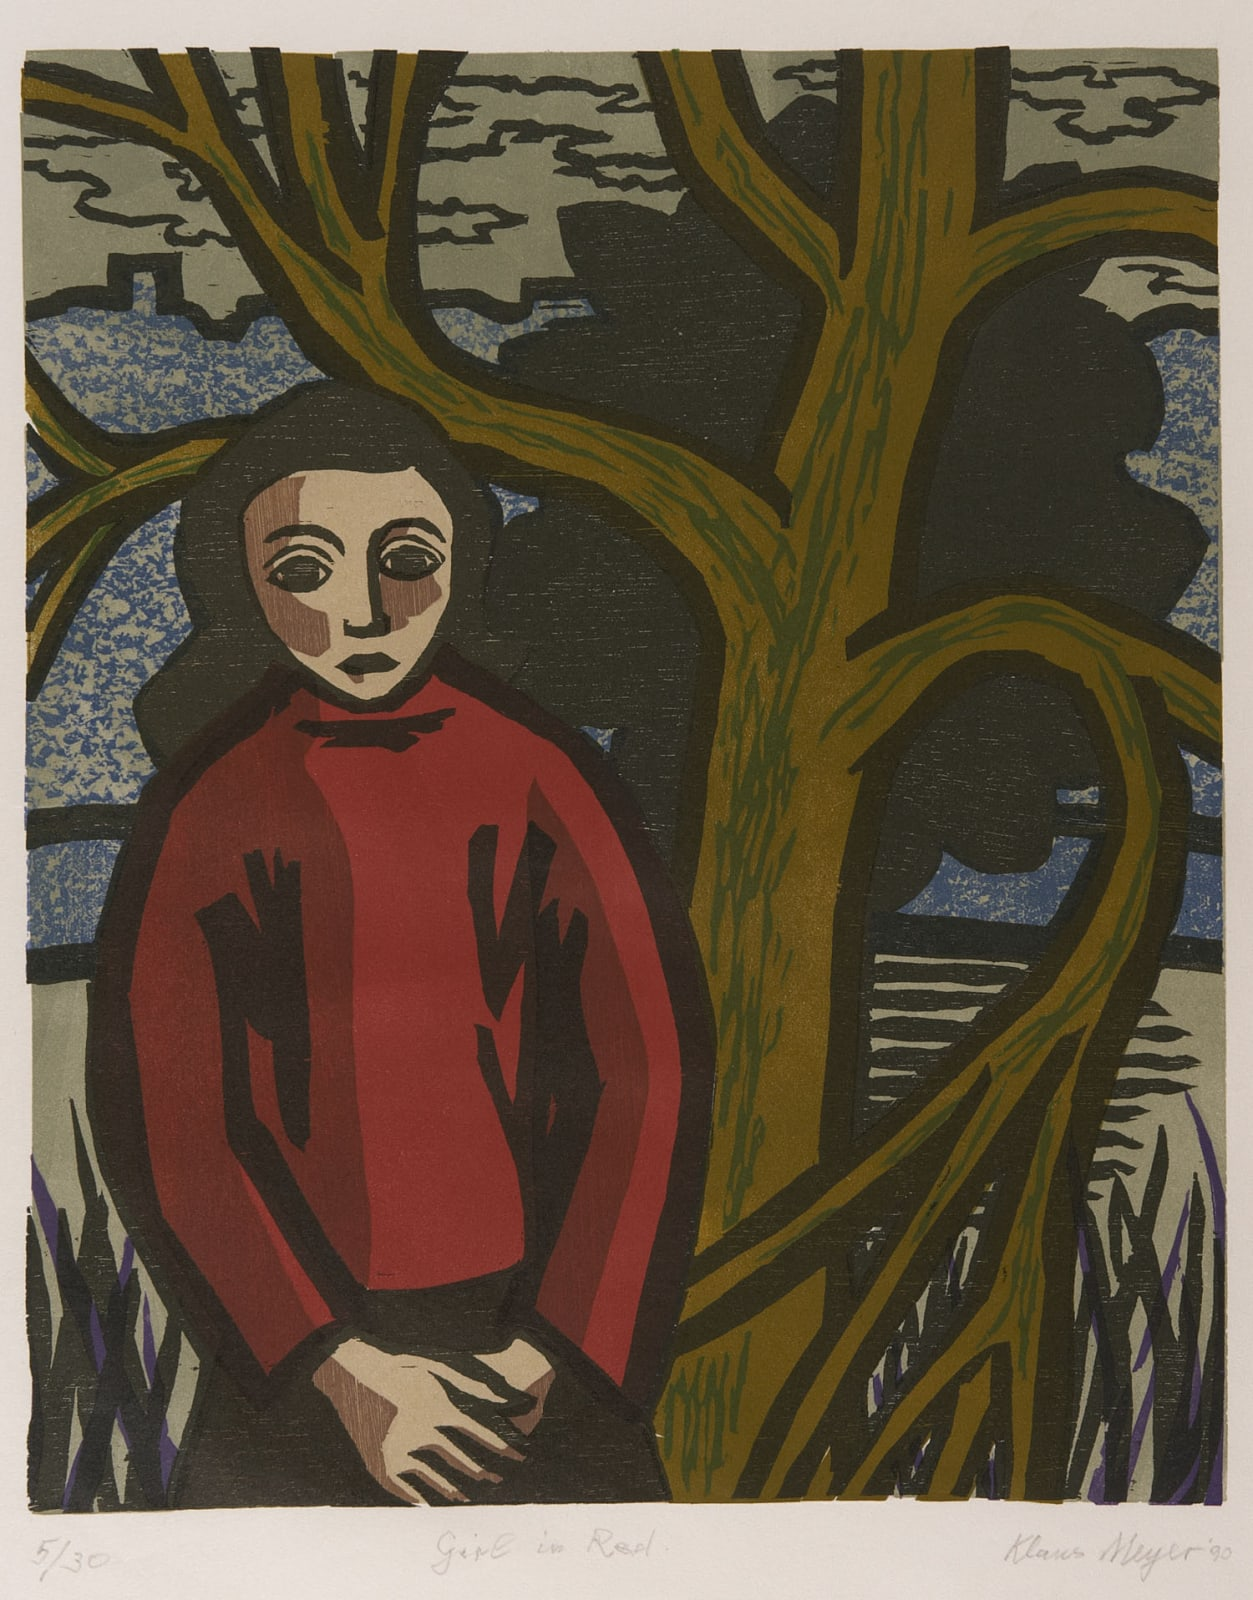 Klaus Meyer (1918-2002) Girl in Red 1990 Woodcut on paper 45 x 36.5 cm Ben Uri Collection © Klaus Meyer estate To see and discover more about this artist click here